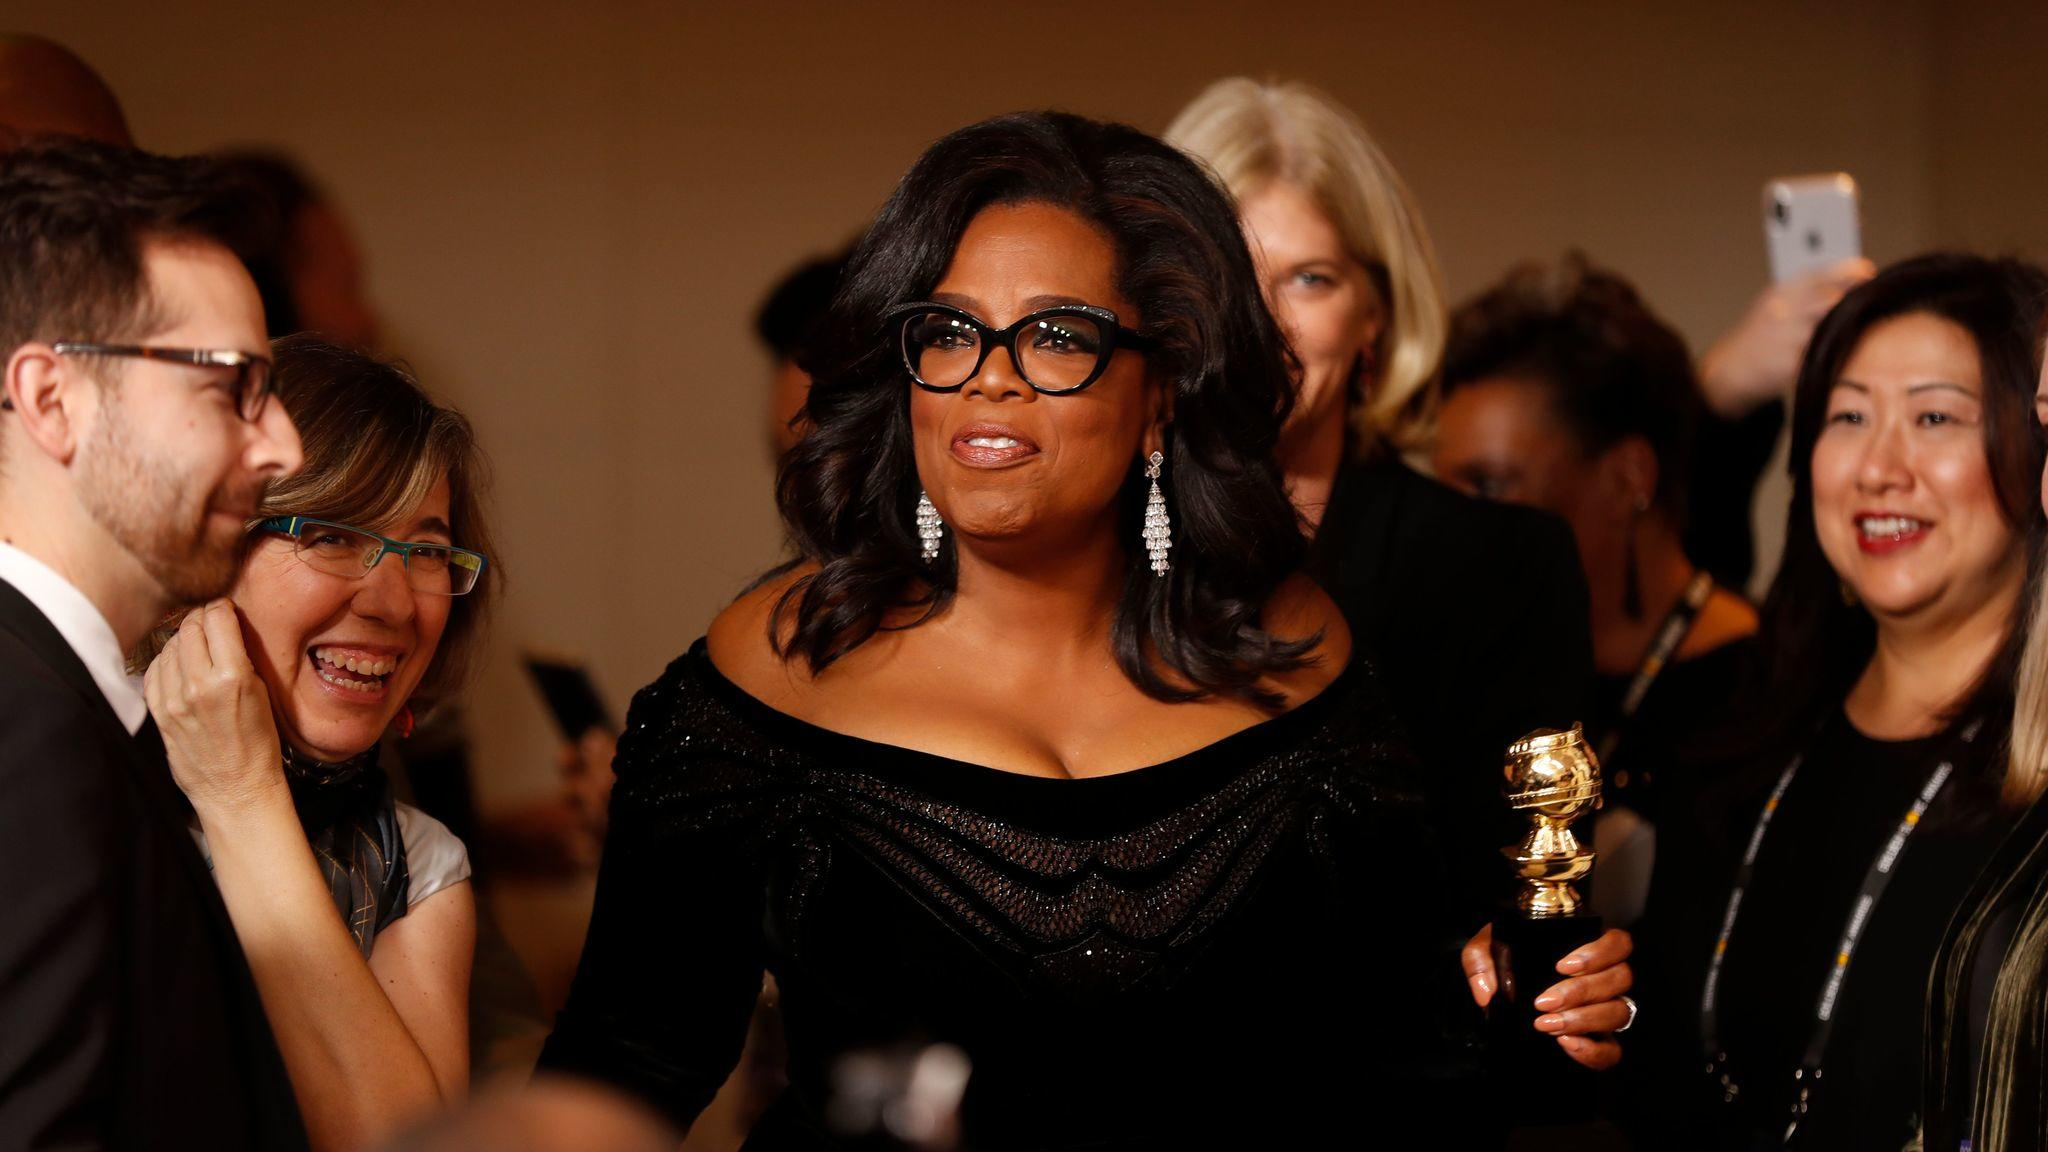 Oprah 2020? People Are Asking After Golden Globes Speech